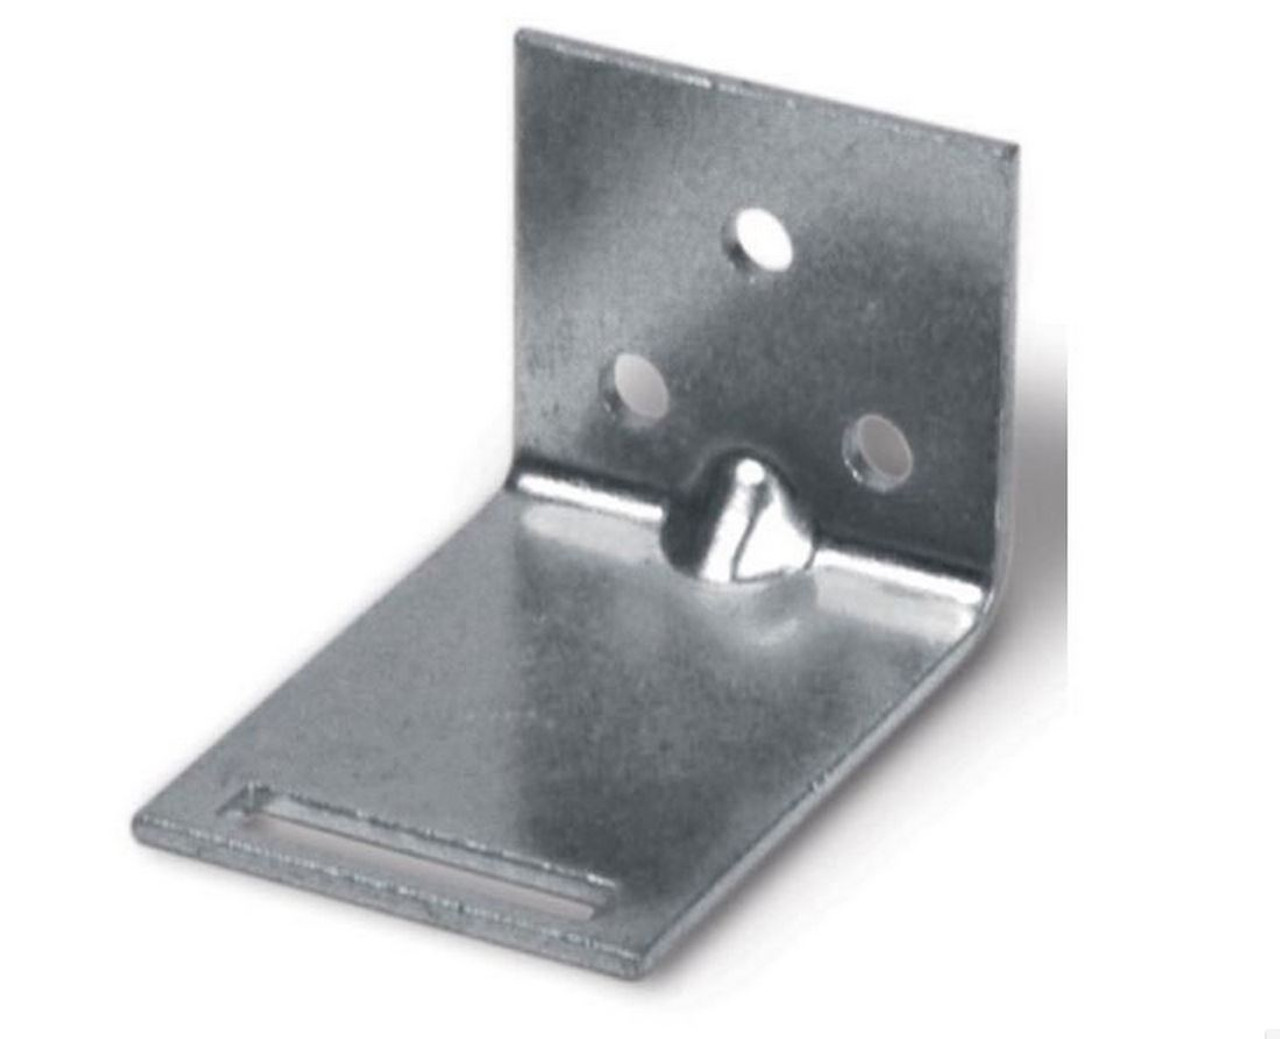 Ansul/Sentry ASWH4 - 17-20 lb Fire Extinguisher Wall Bracket